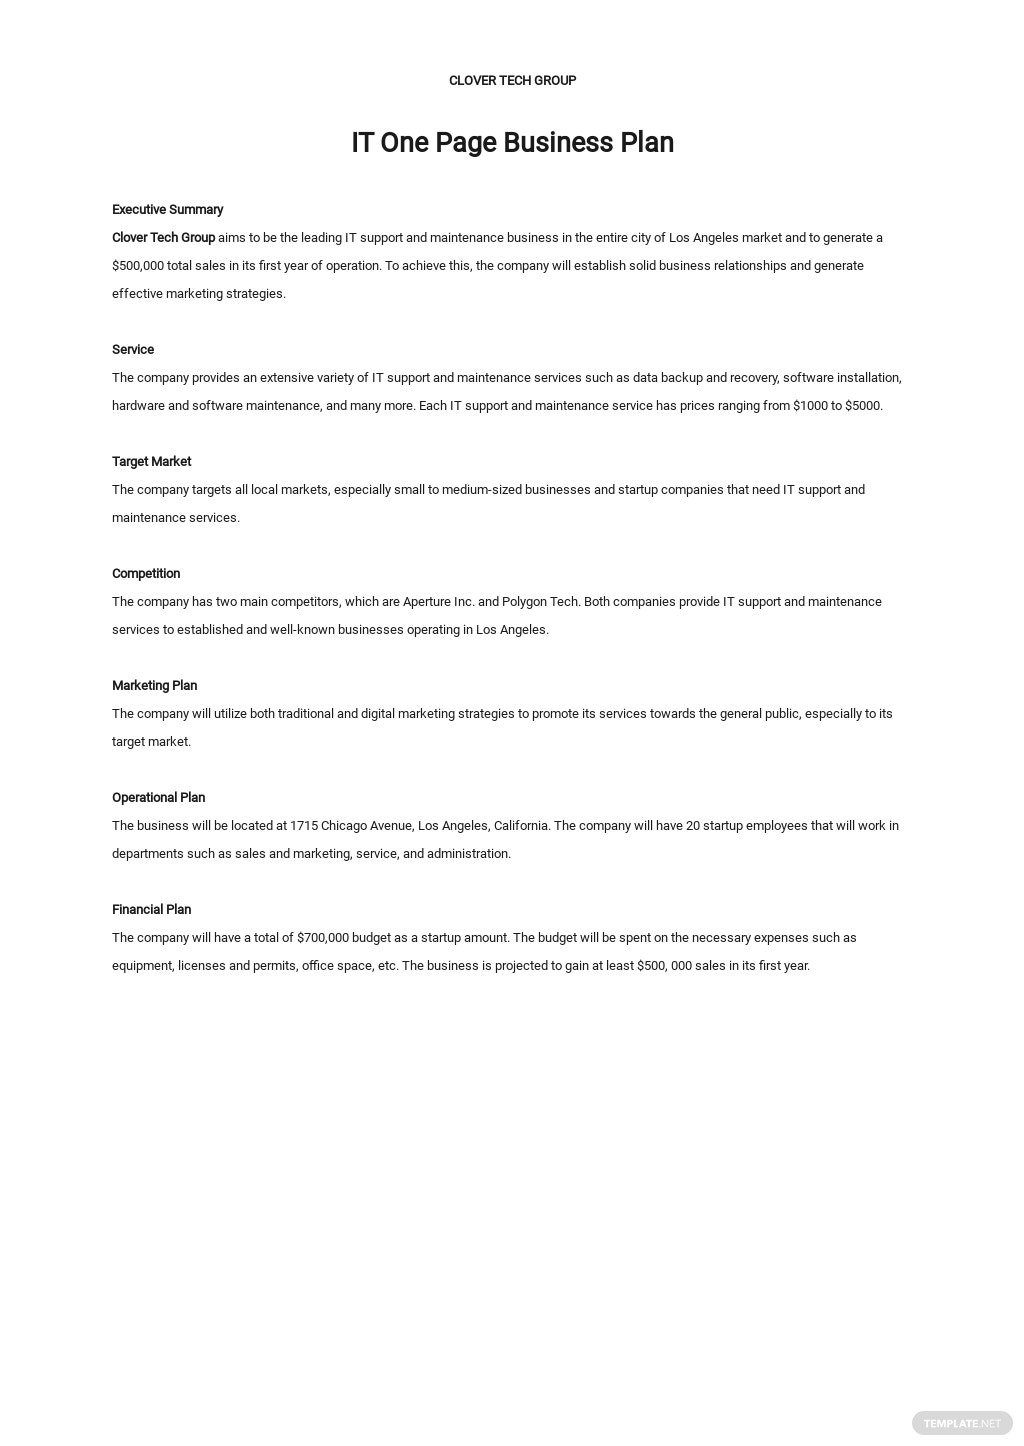 Free Sample IT One Page Business Plan Template.jpe